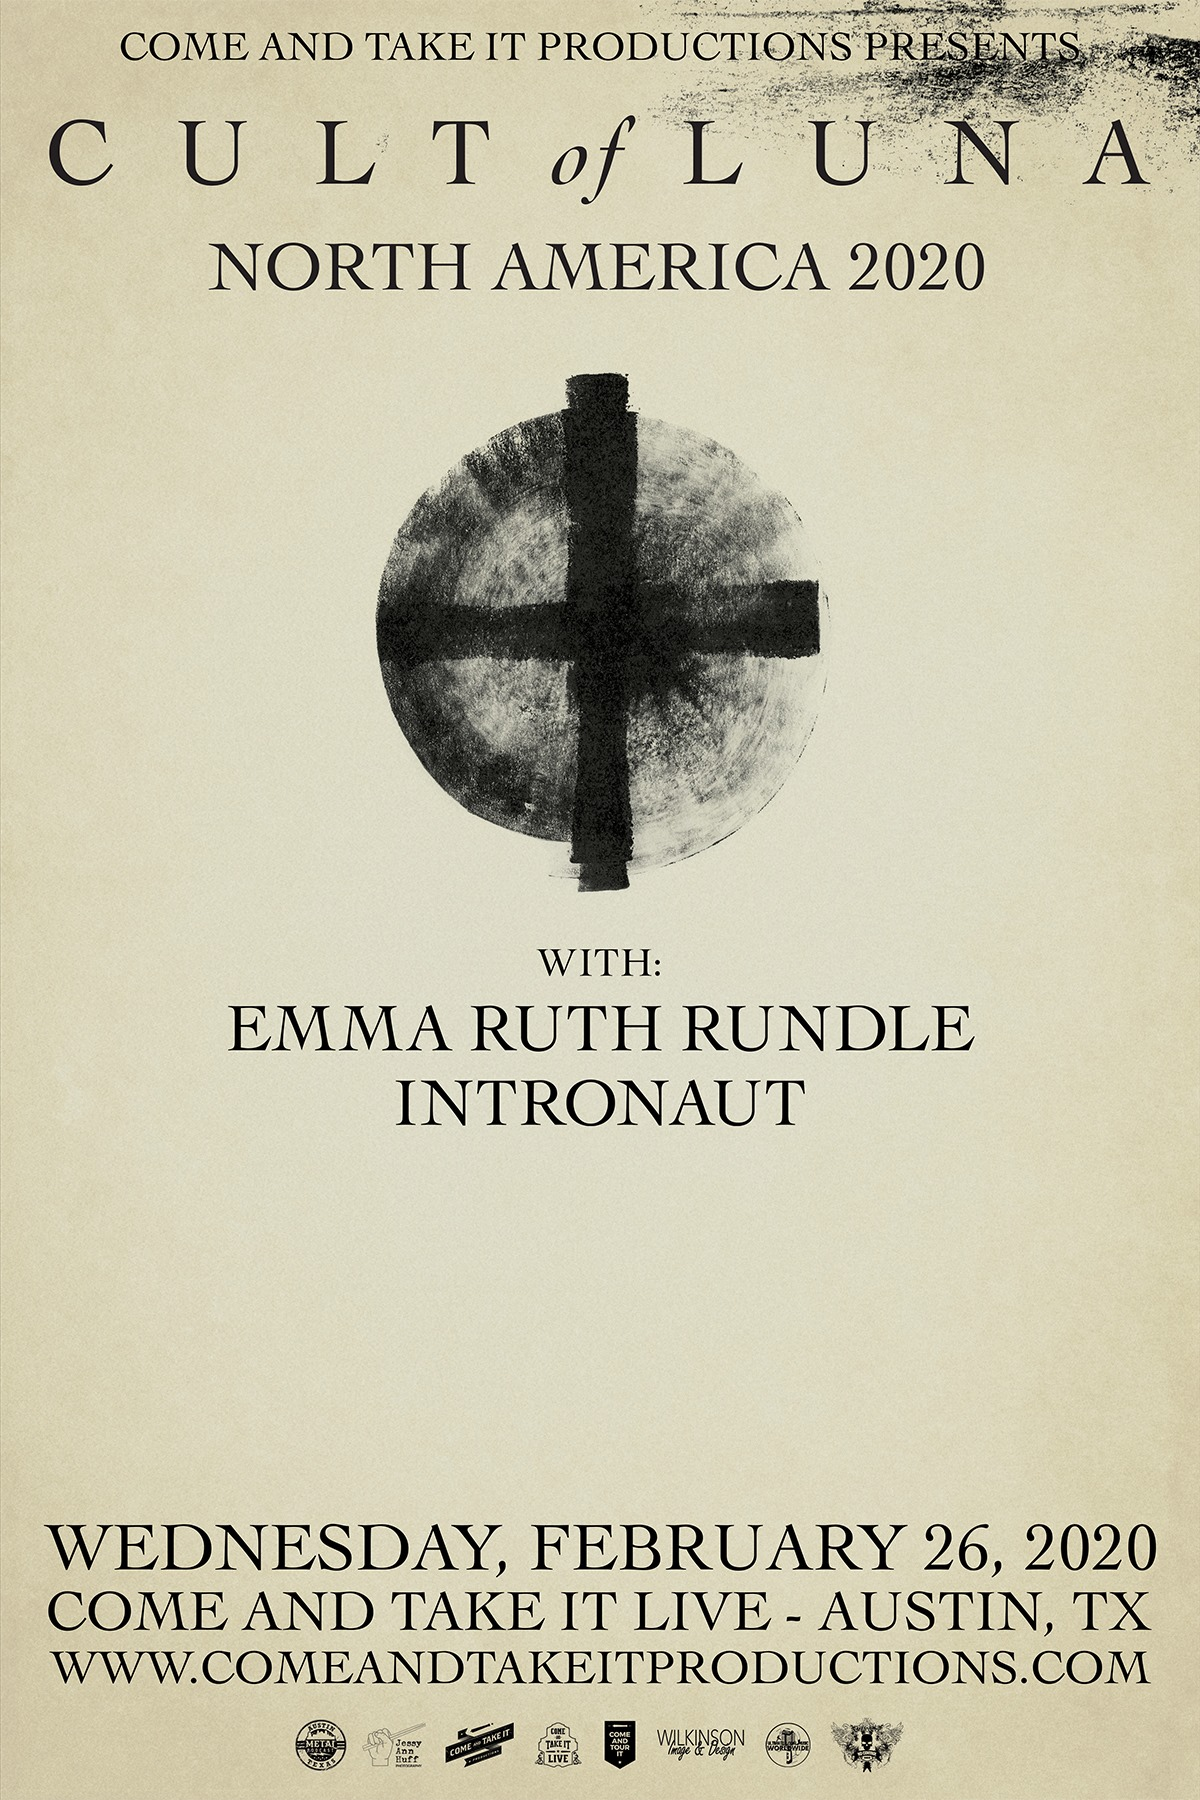 Cult of Luna, Emma Ruth Rundle and Intronaut